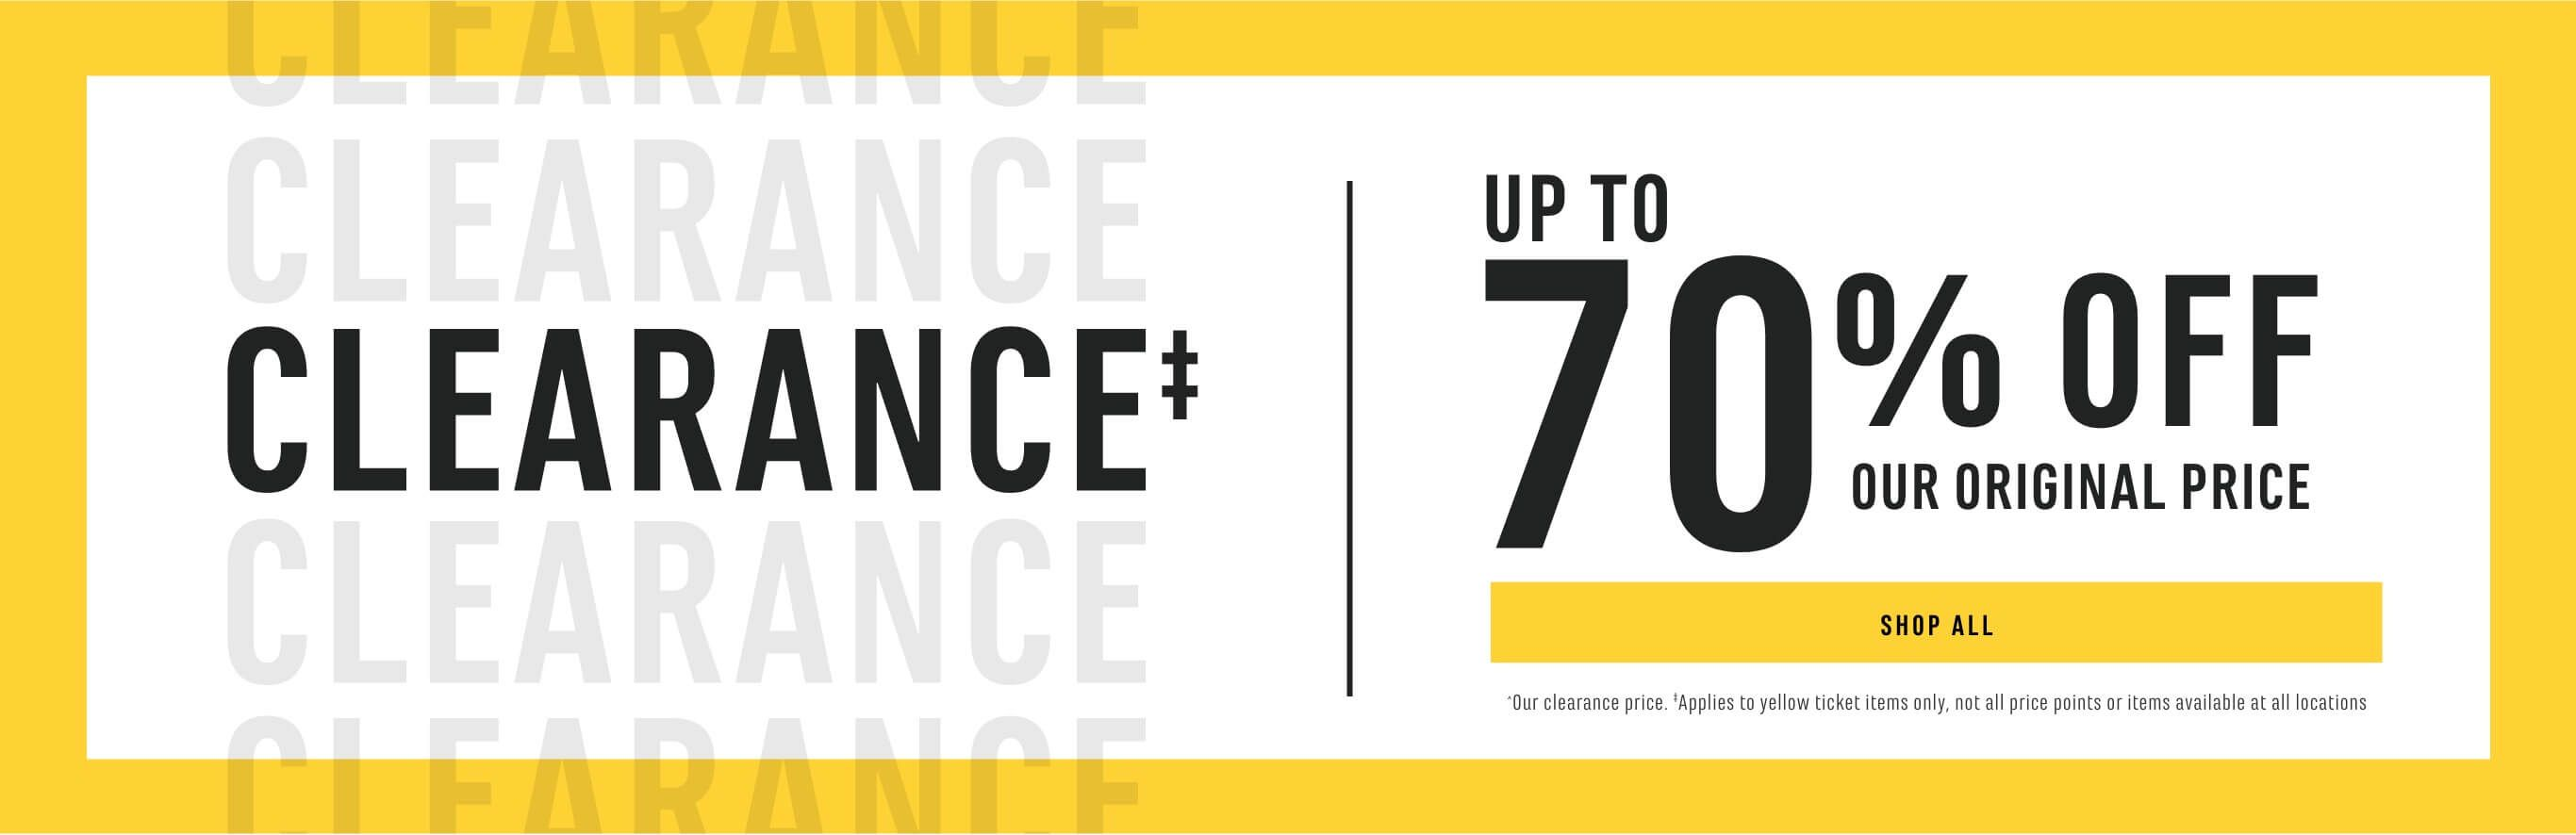 Clearance up to 70% Off Our Original Price. Shop Now!